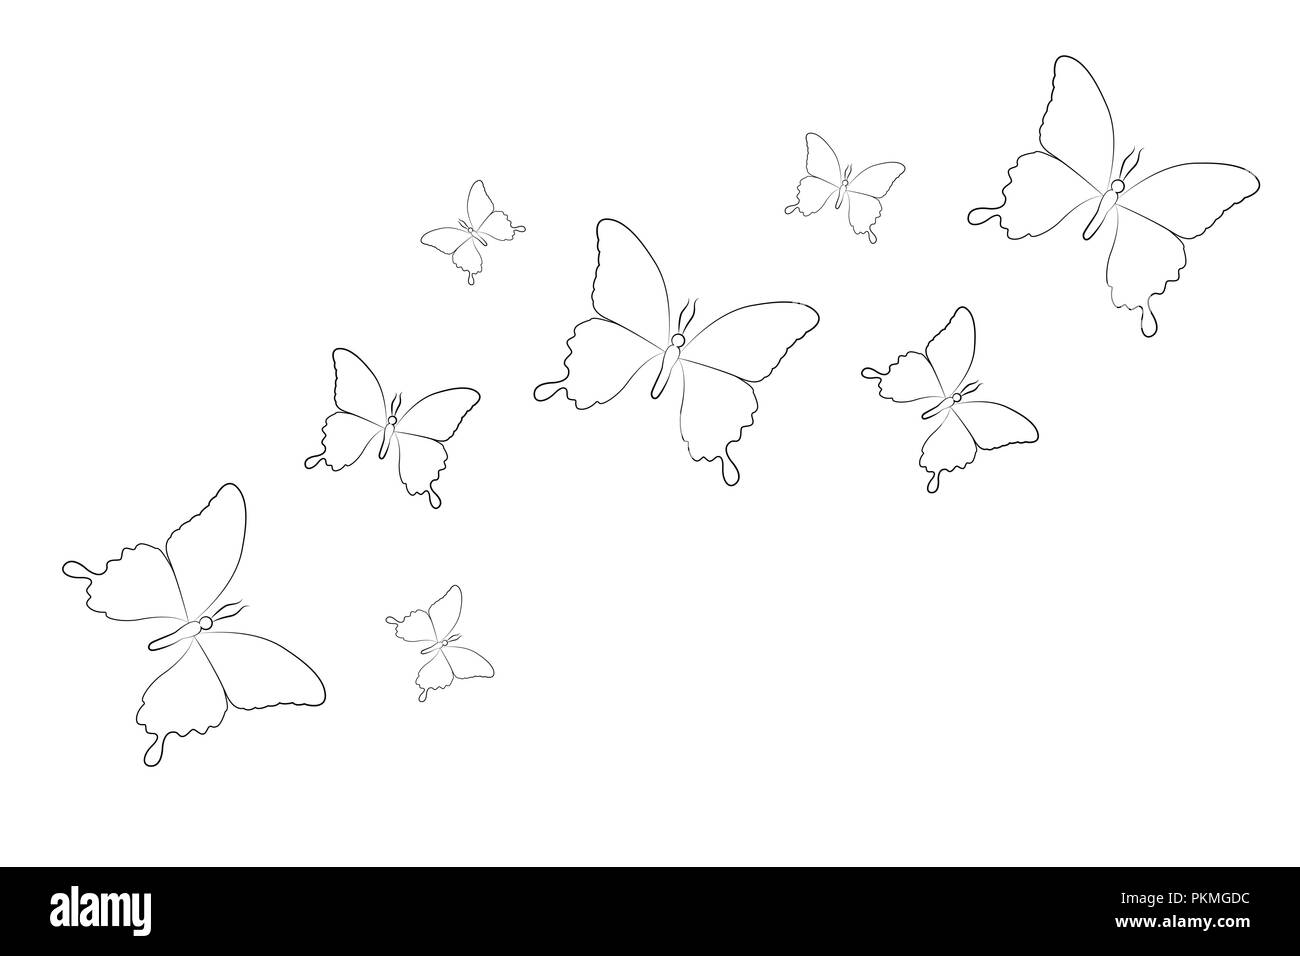 Set of line drawing butterfly isolated on a white background vector illustration eps10